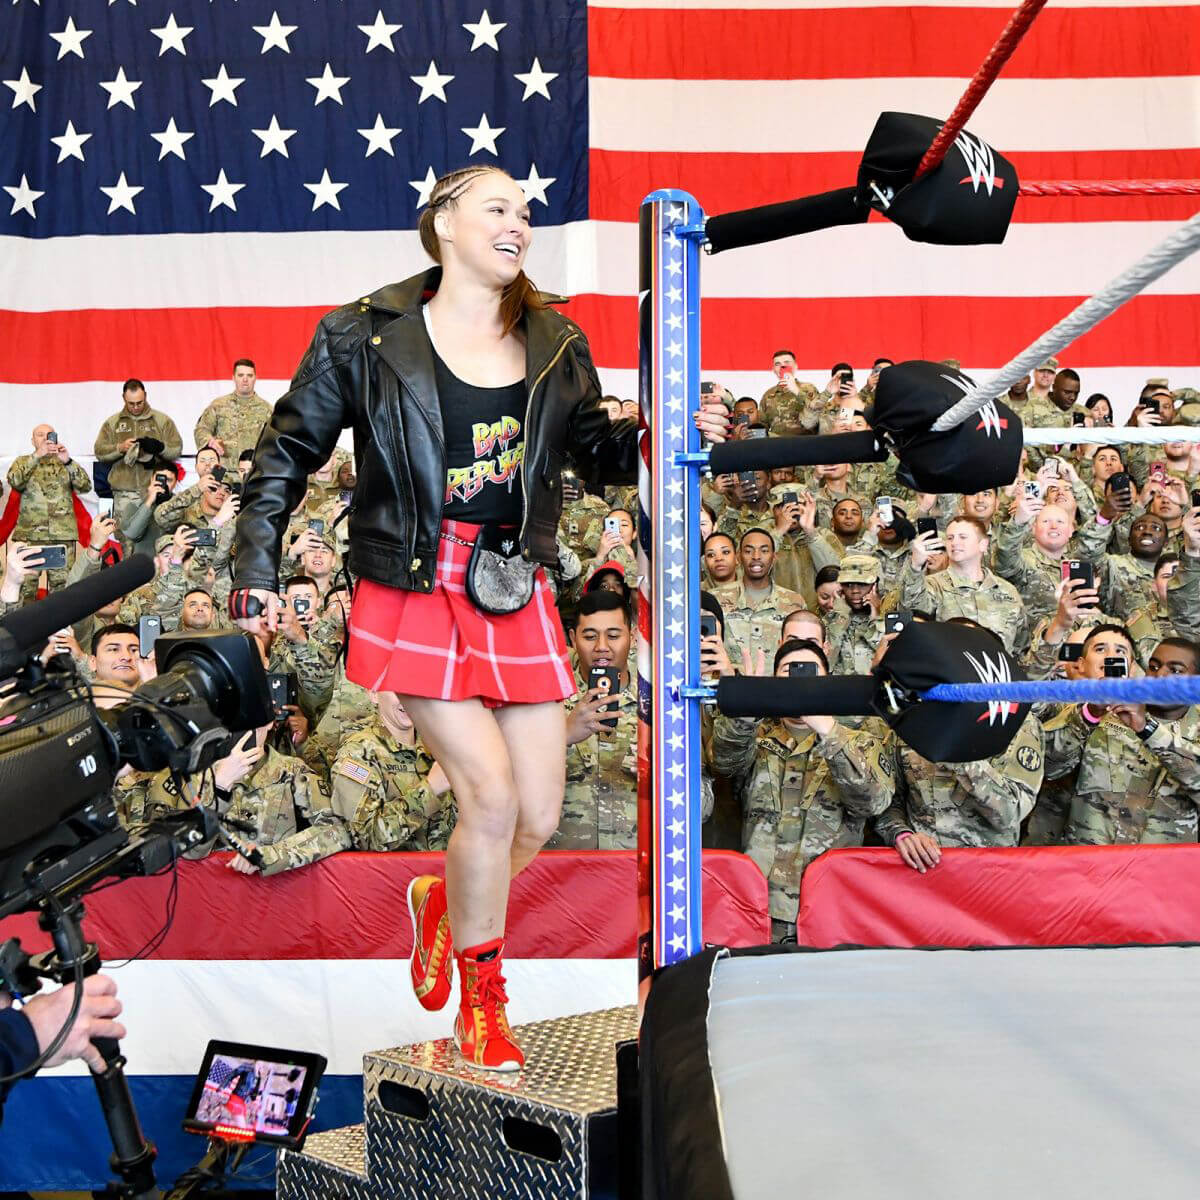 Ronda Rousey & Natalya vs. Nia Jax & Tamina vs. Liv Morgan & Sarah Logan - WWE Tribute to the Troops 2018/12/20 1